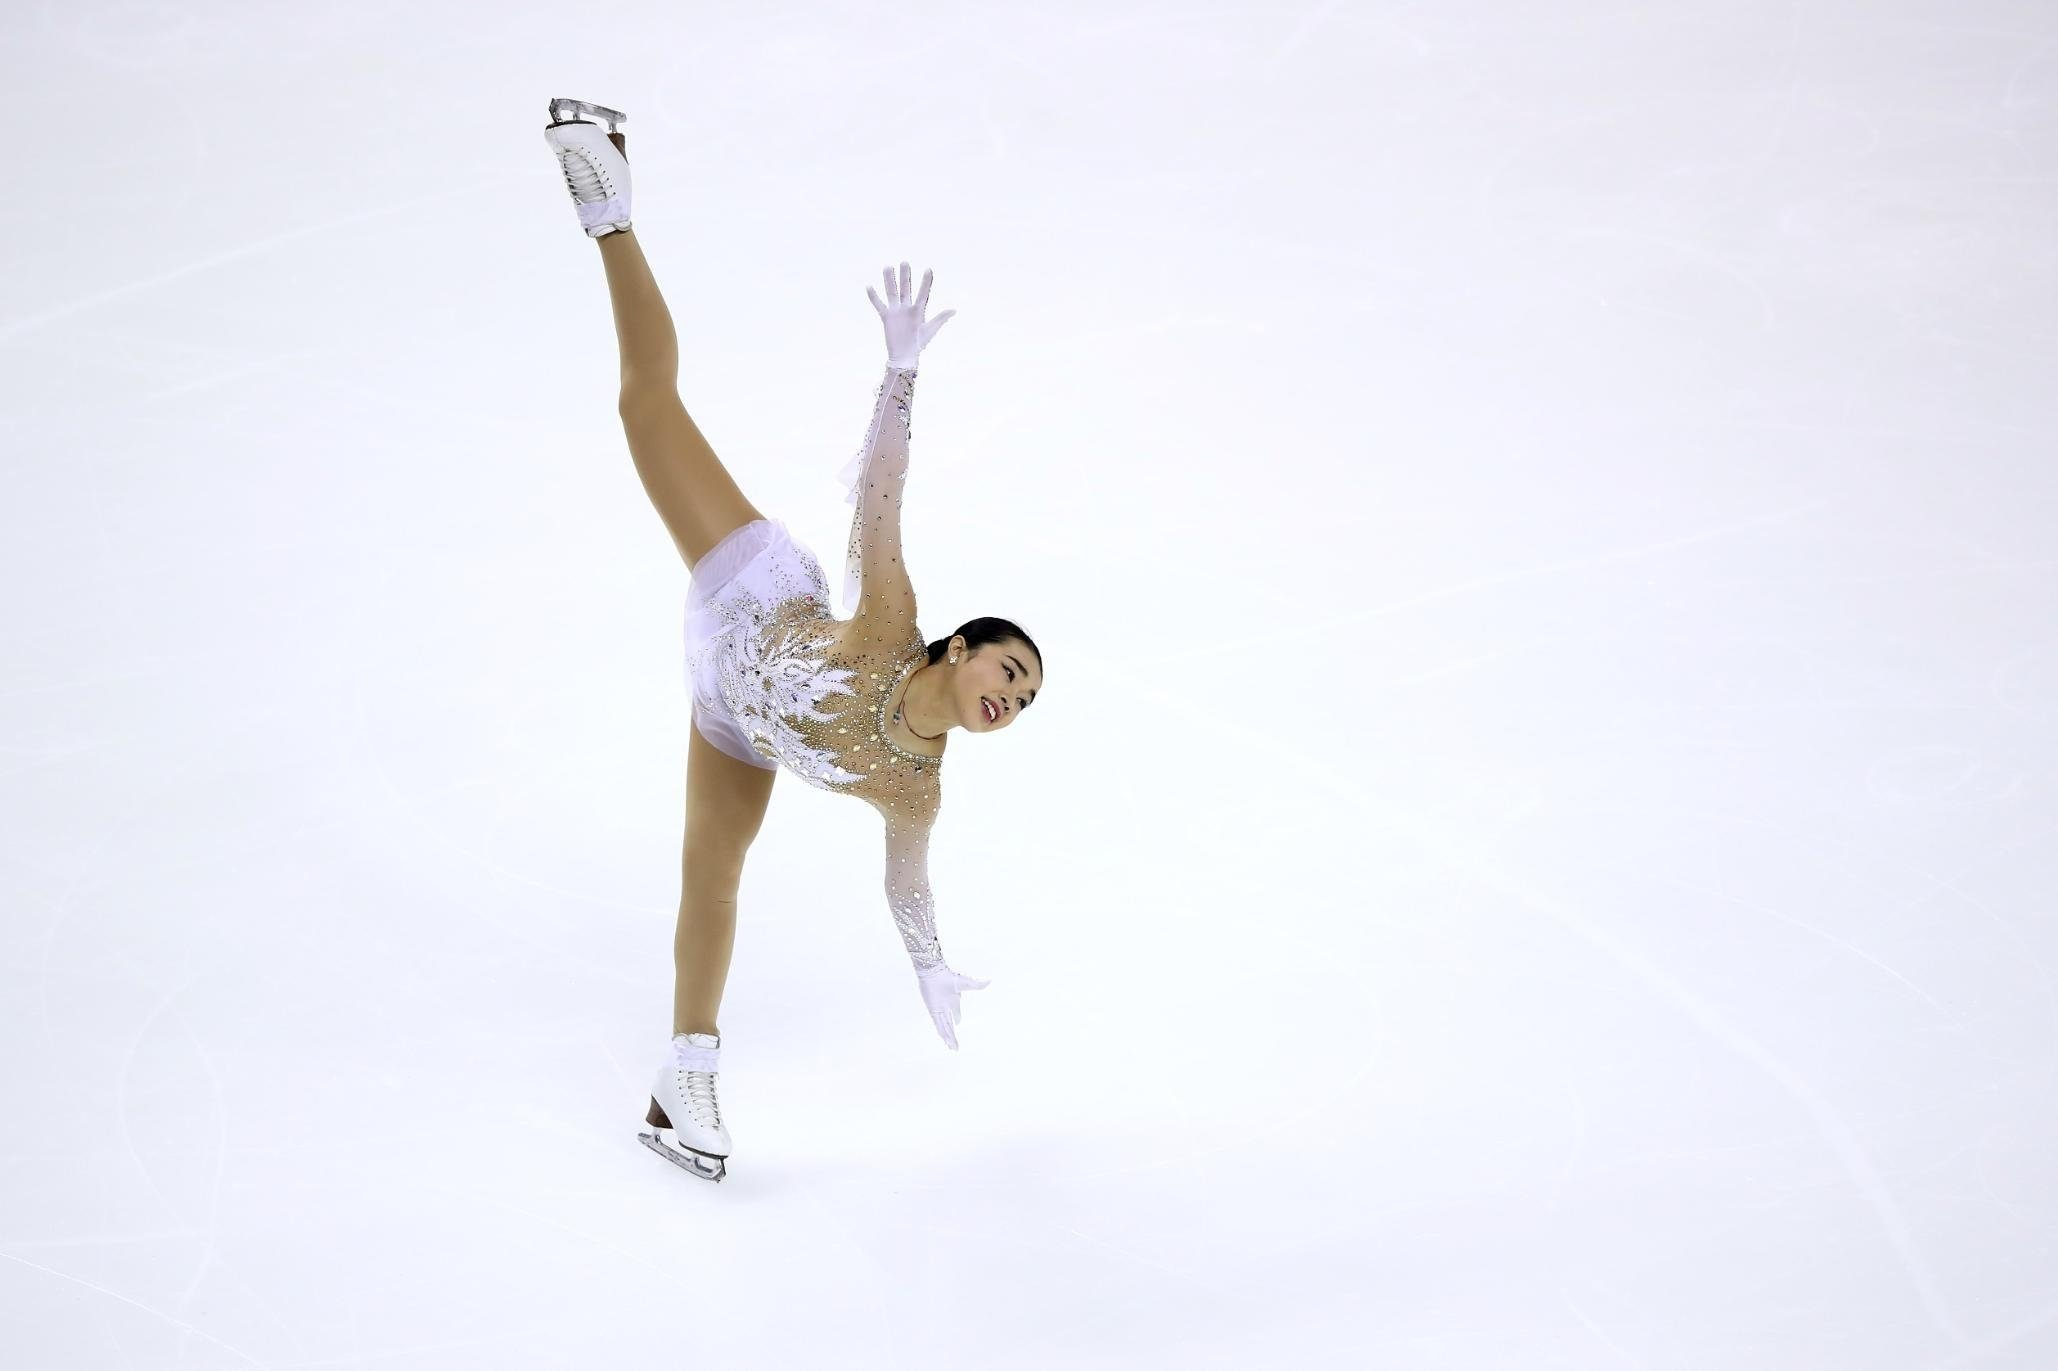 Karen Chen, 18, won gold at the US National Championship in 2017 and finished third in the 2018 competition.